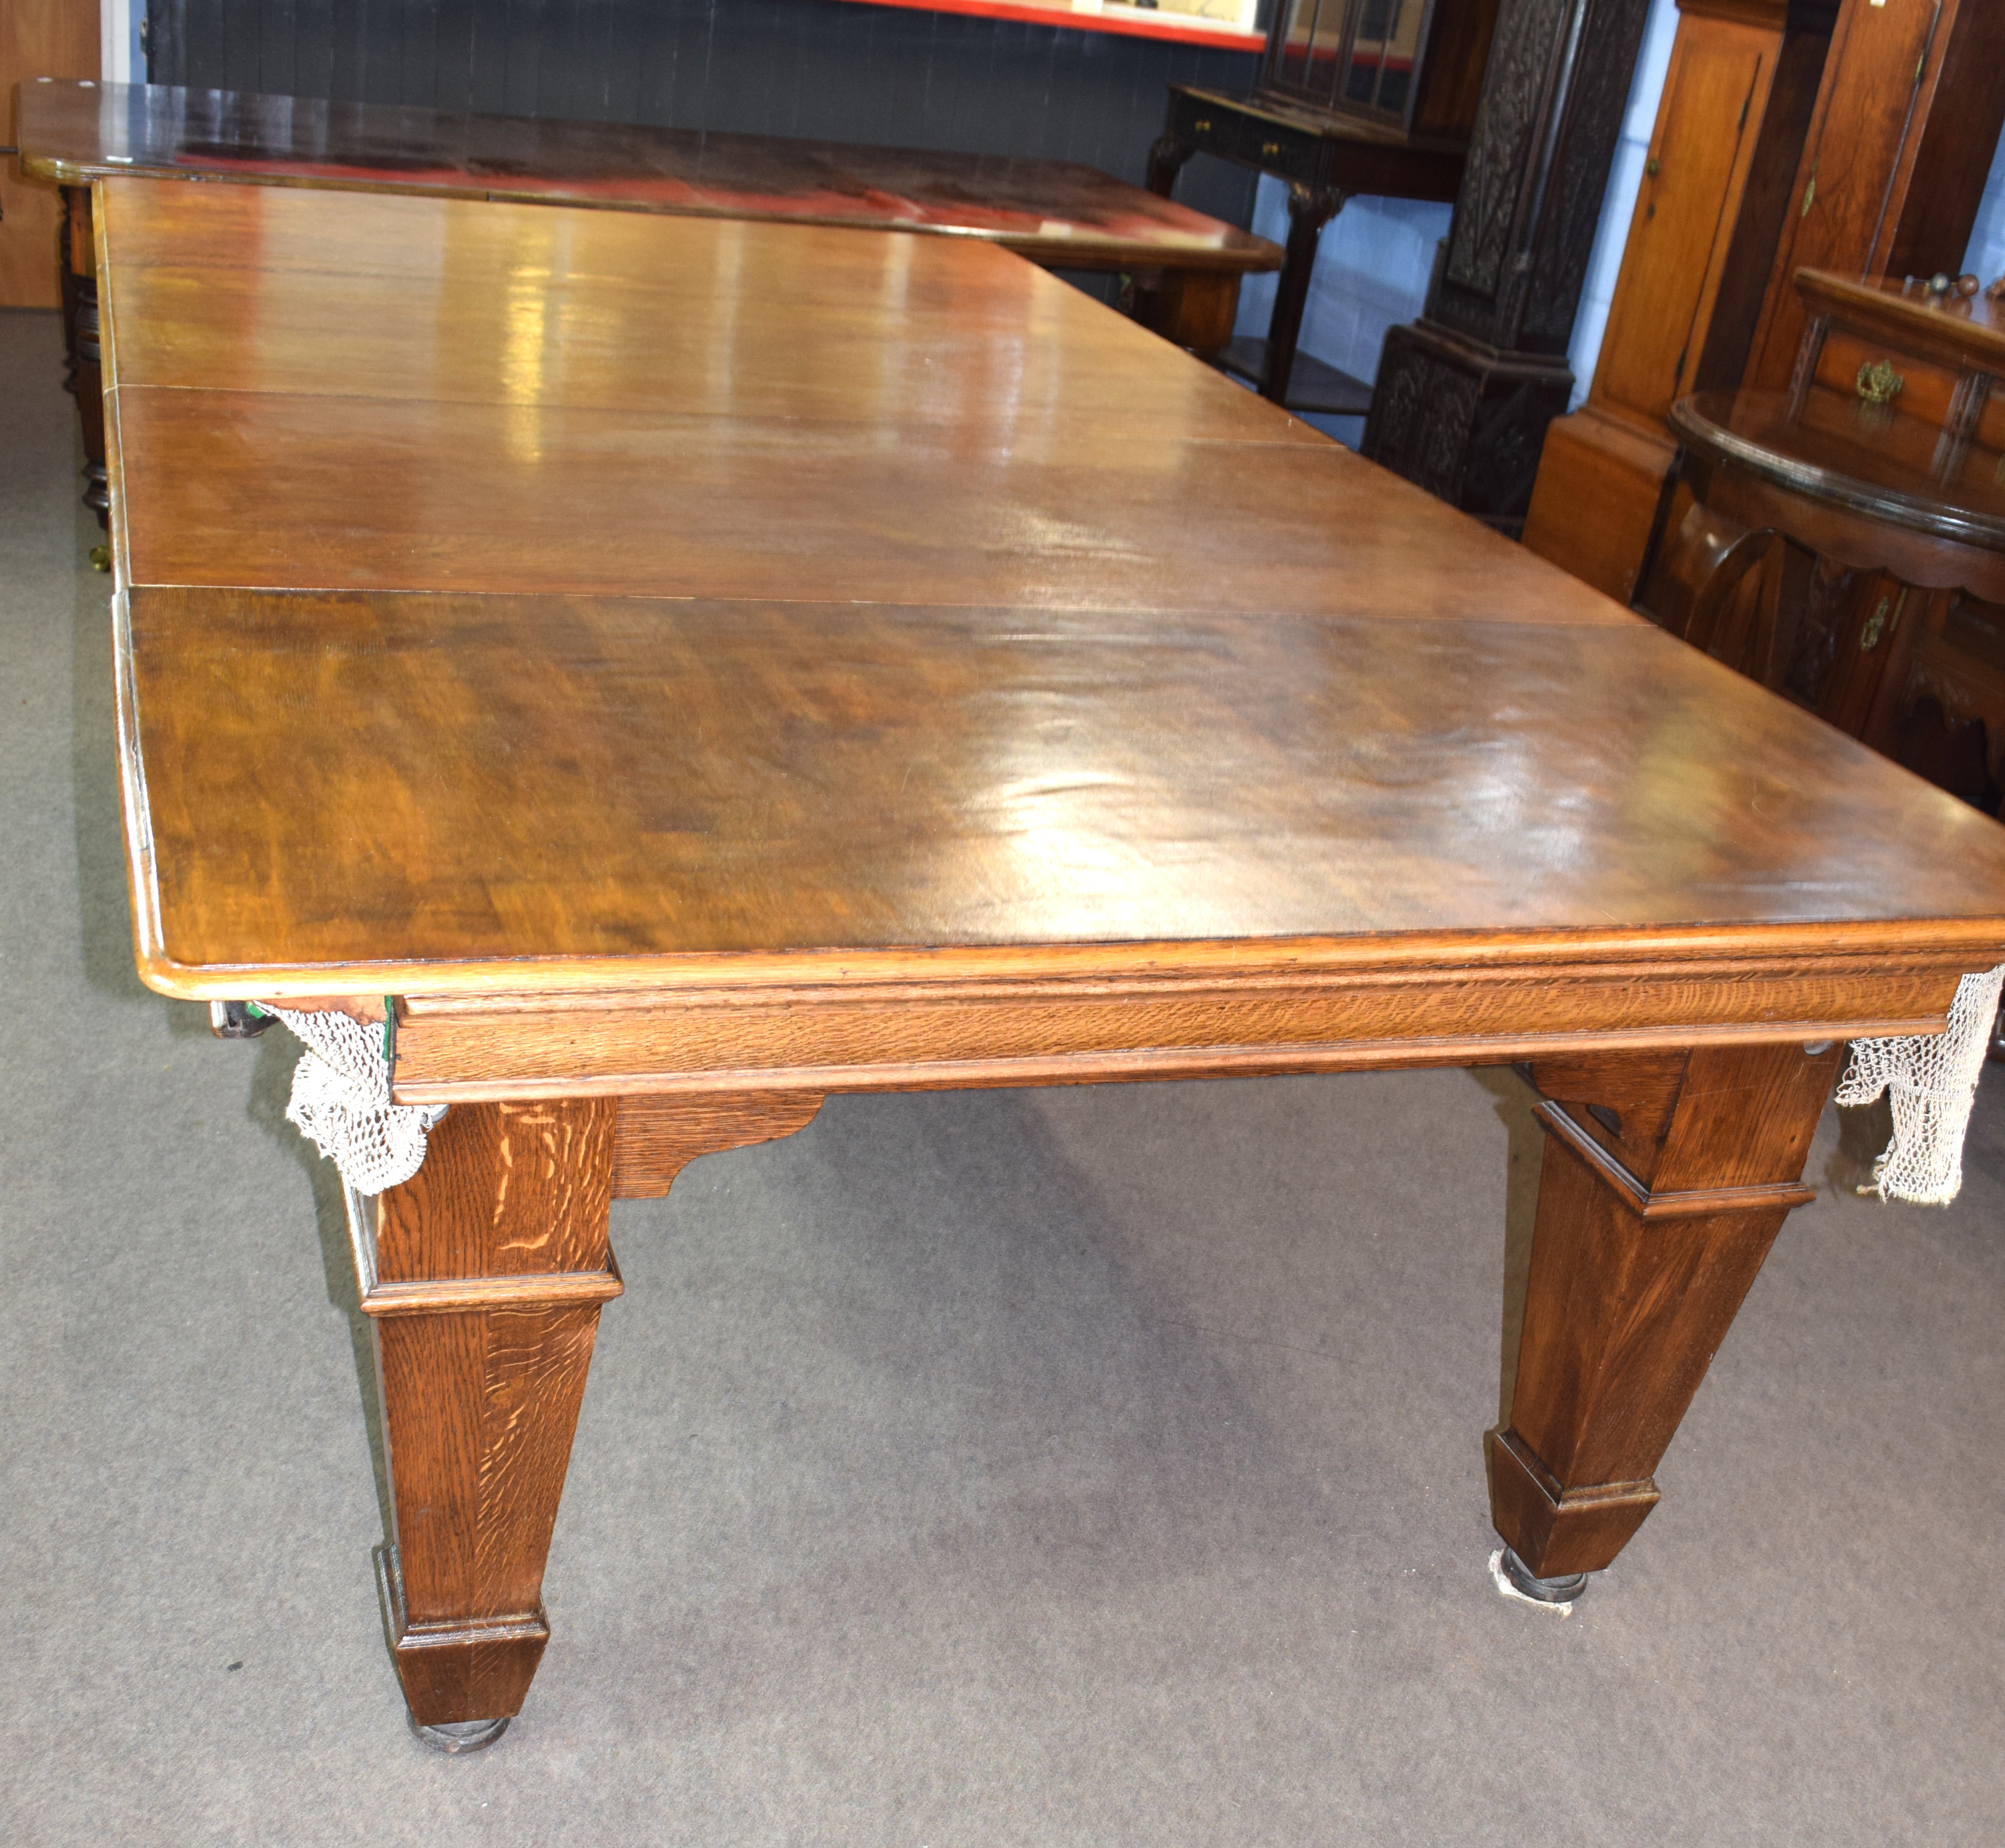 Oak frame and slate bed, quarter size snooker table with leaves adapting it to a dining table - Image 4 of 6